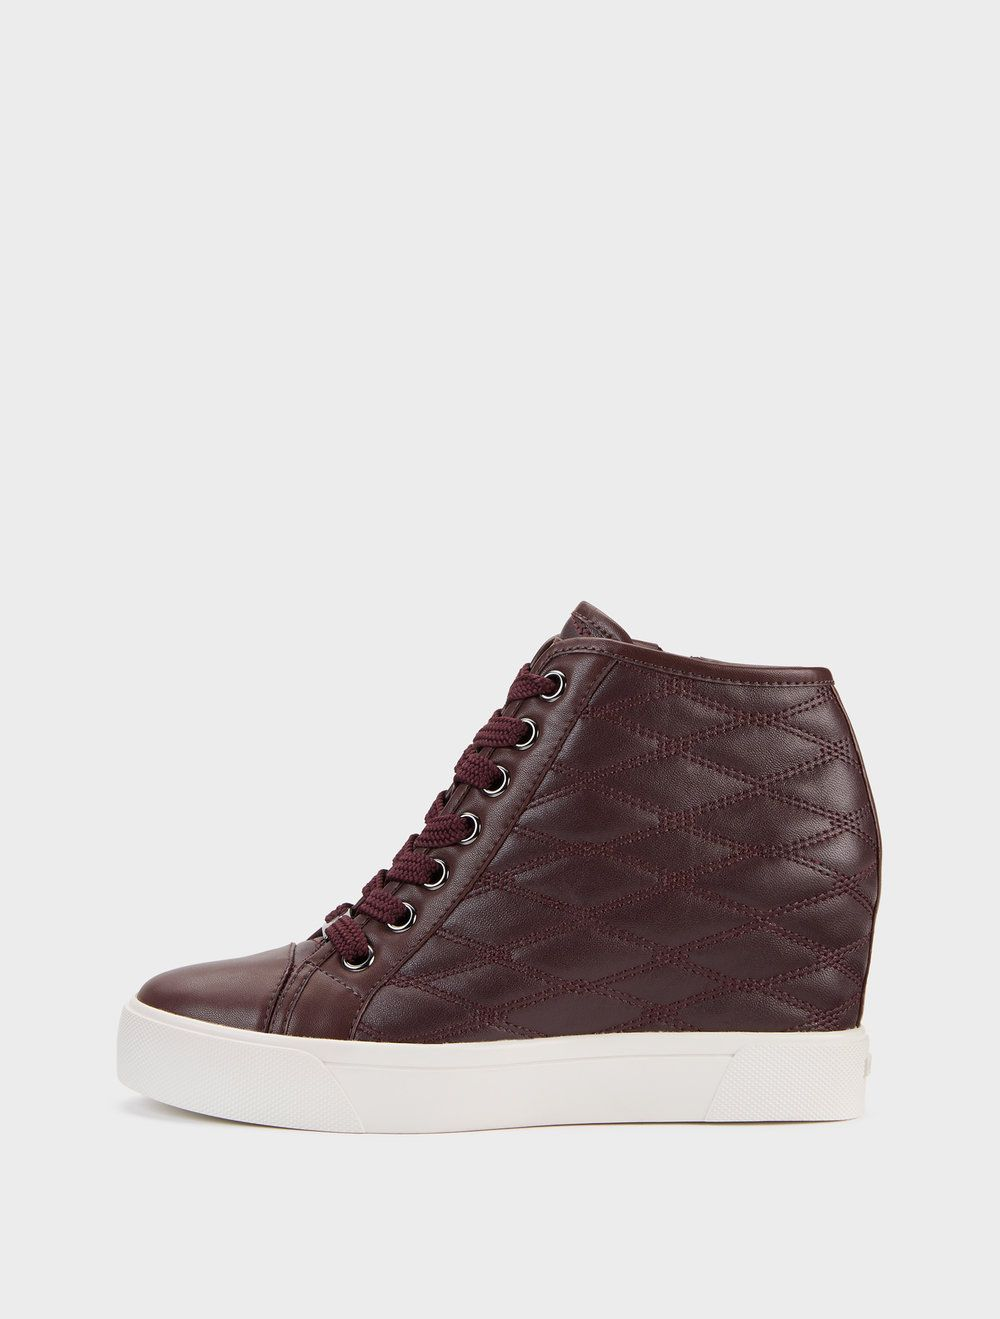 344ae19ba77 Burgundy leather Cindy Quilted Nappa Wedge Sneaker from DKNY ...